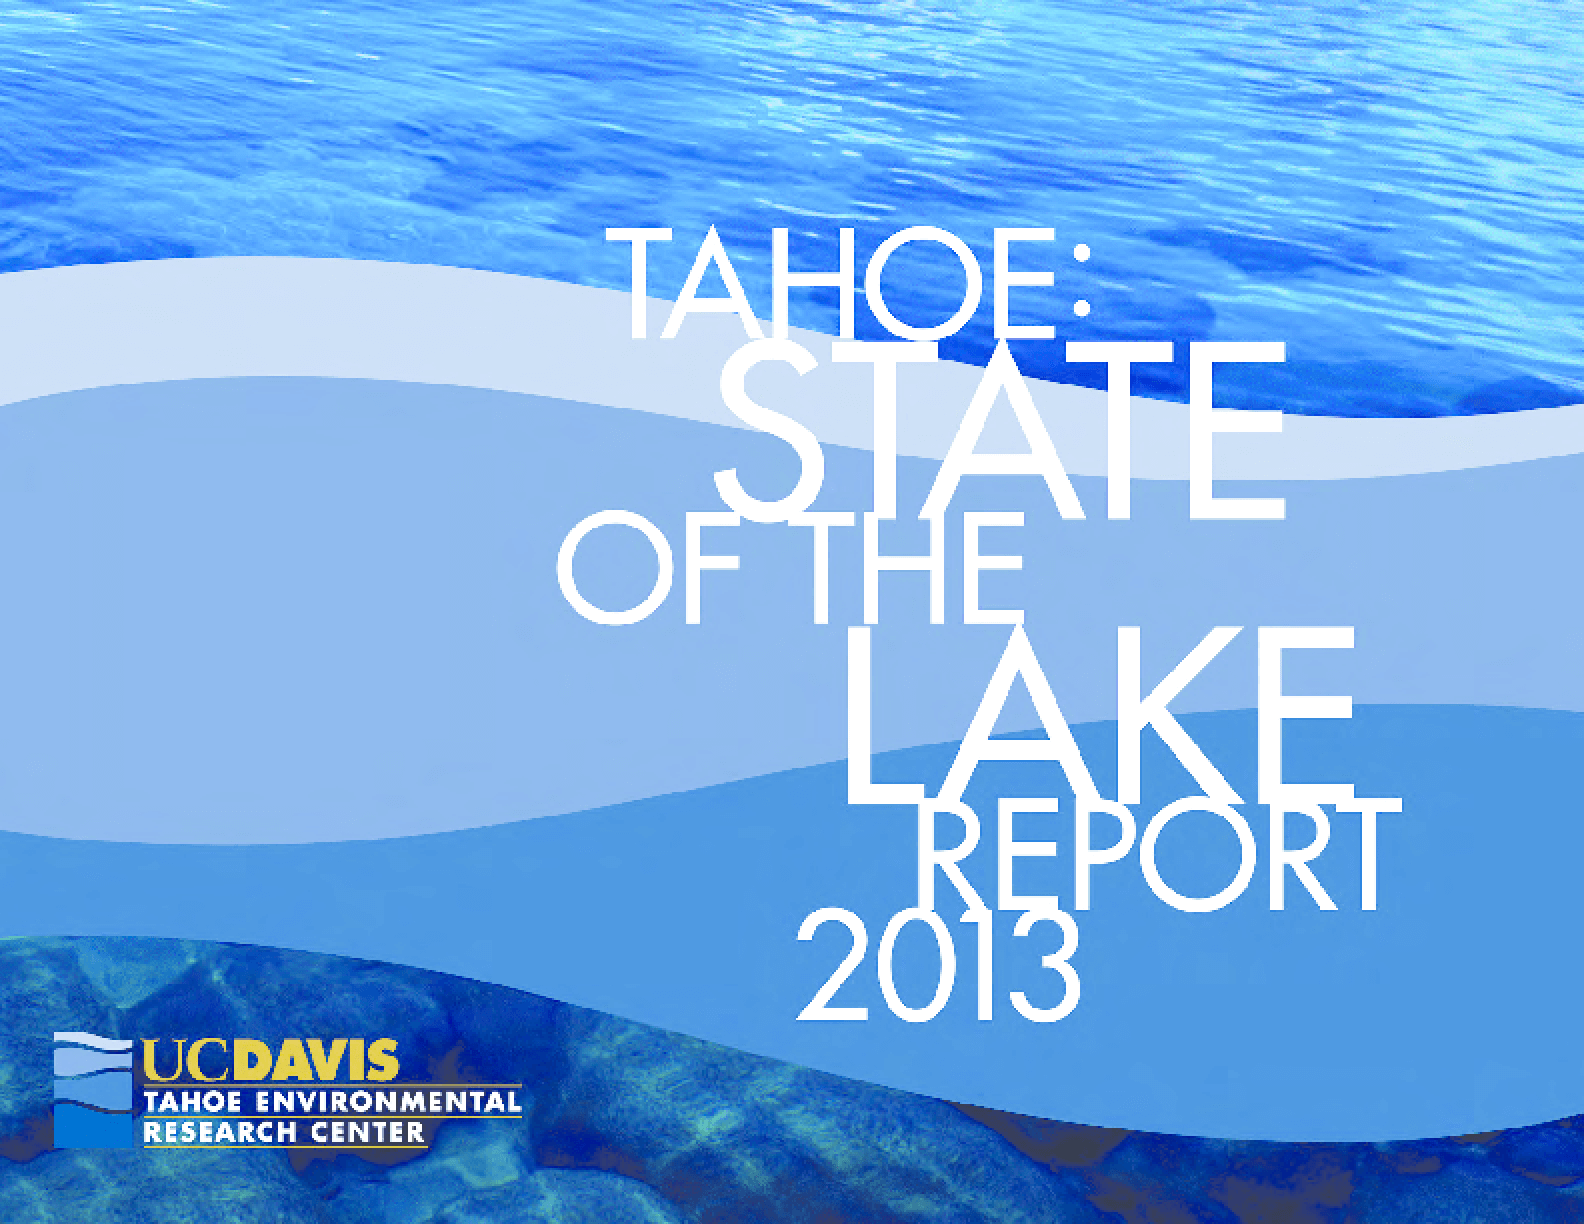 Tahoe: State of the Lake Report 2013